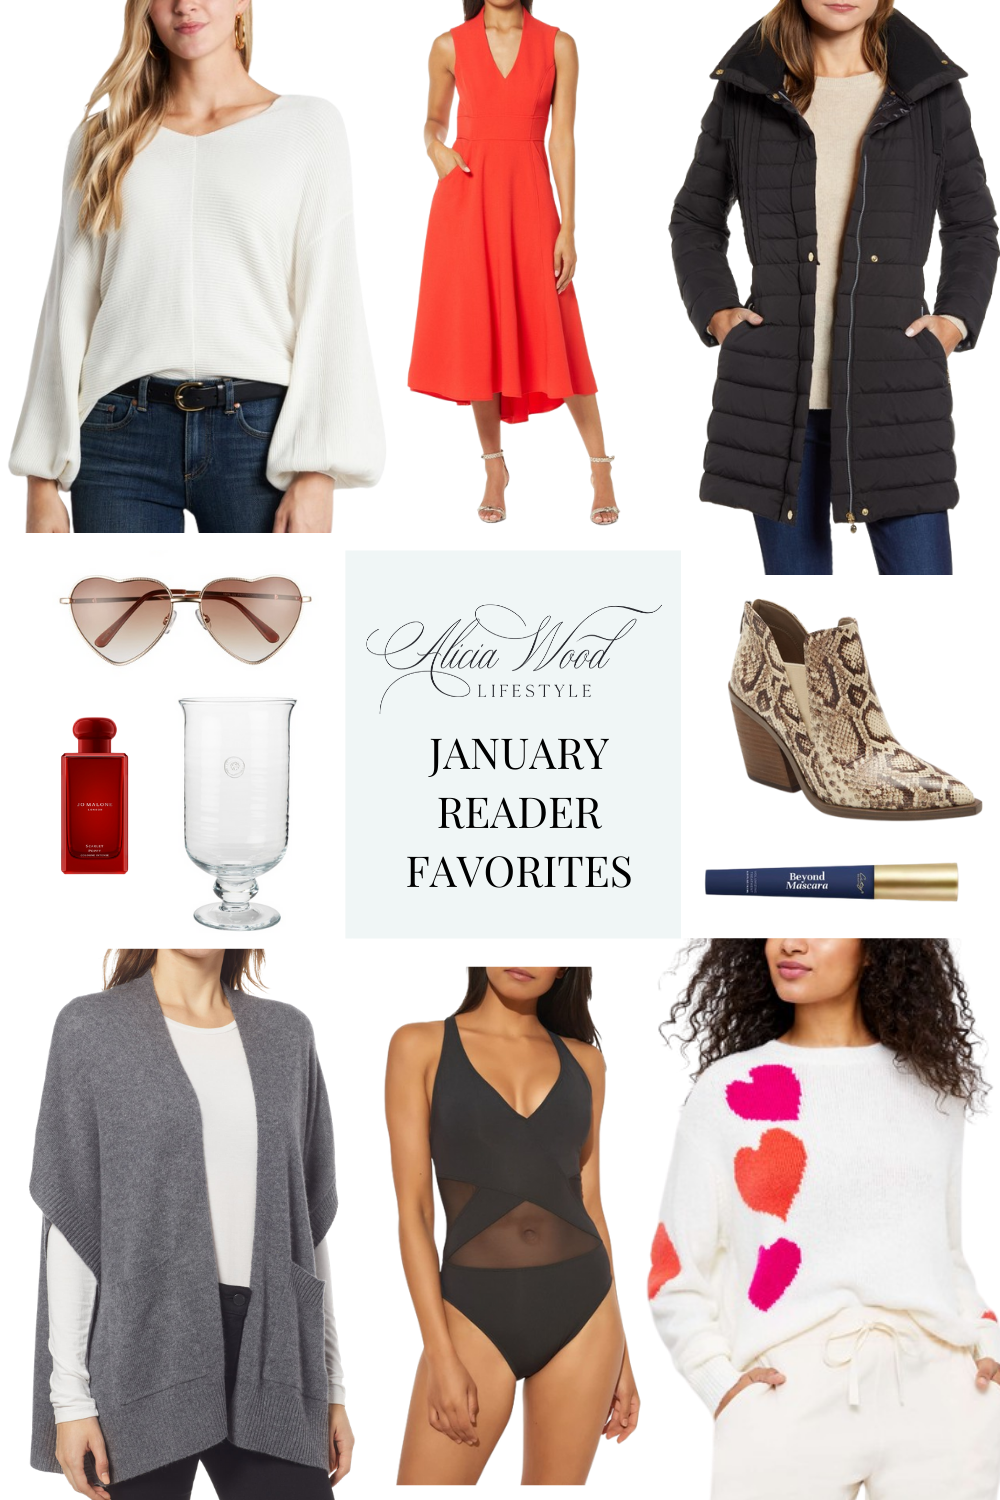 January Reader Favorites & Best Sellers